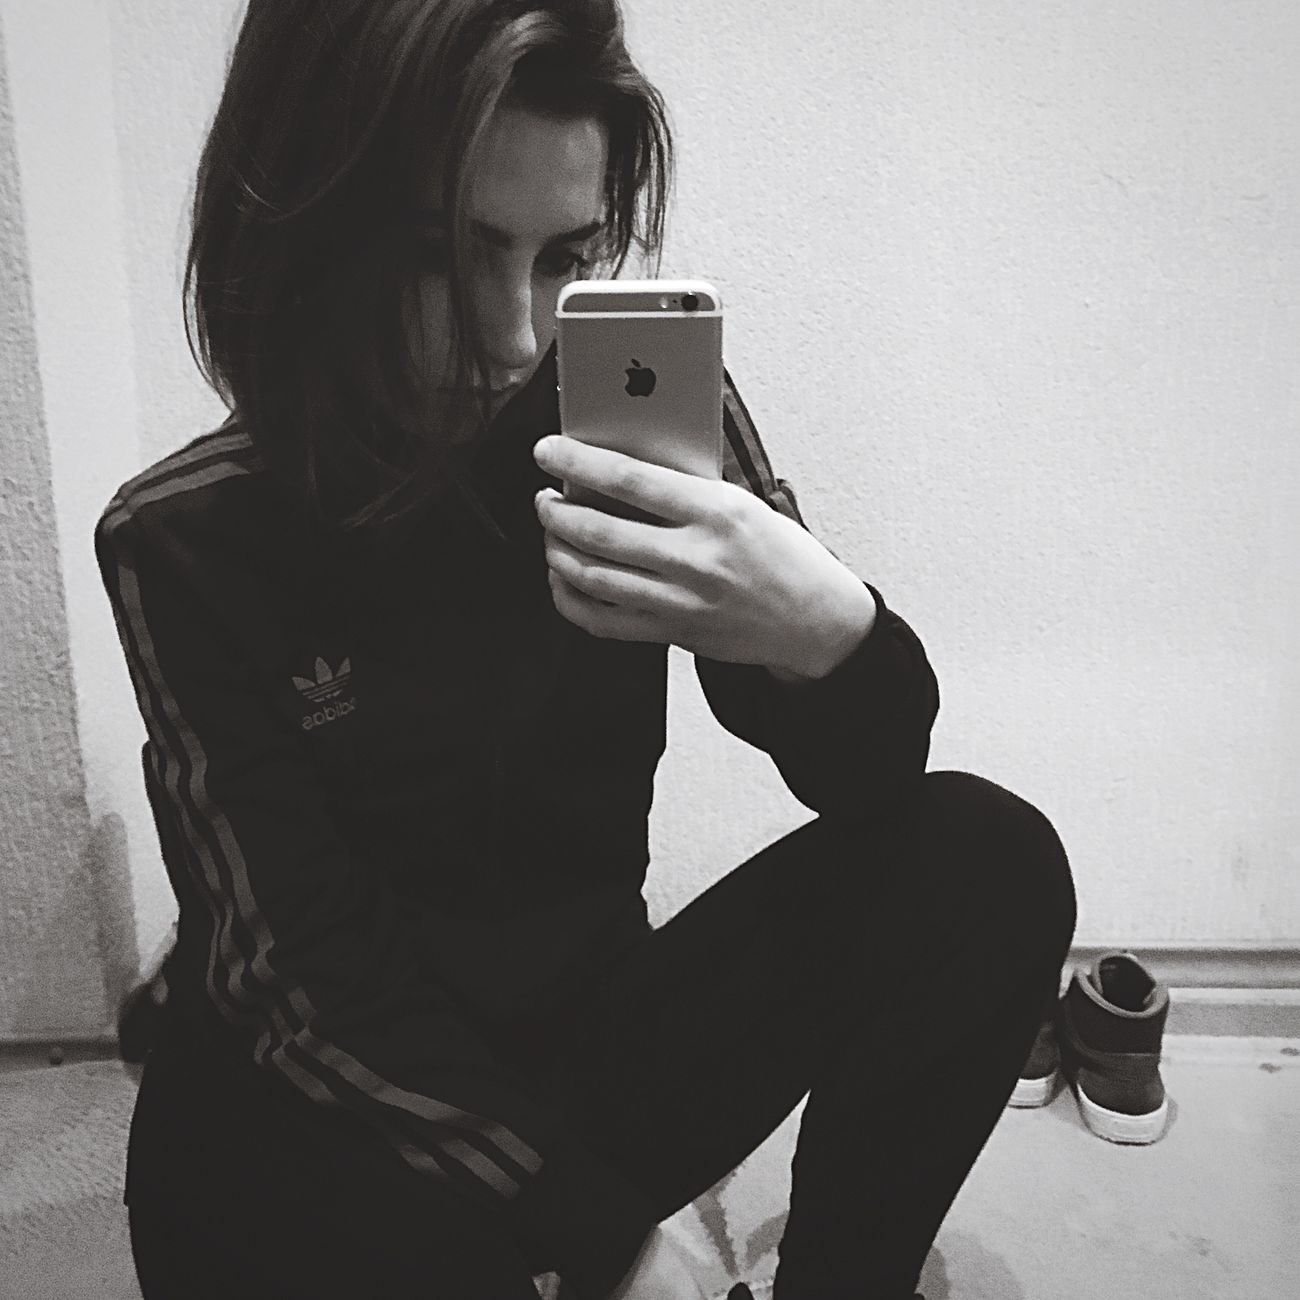 My life be like Selfie Lifestyles Women Young Adult Young Women Girl Ukraine One Person Adidas Adult Beautiful Casual Clothing Casual Photography Themes Photographing Taking